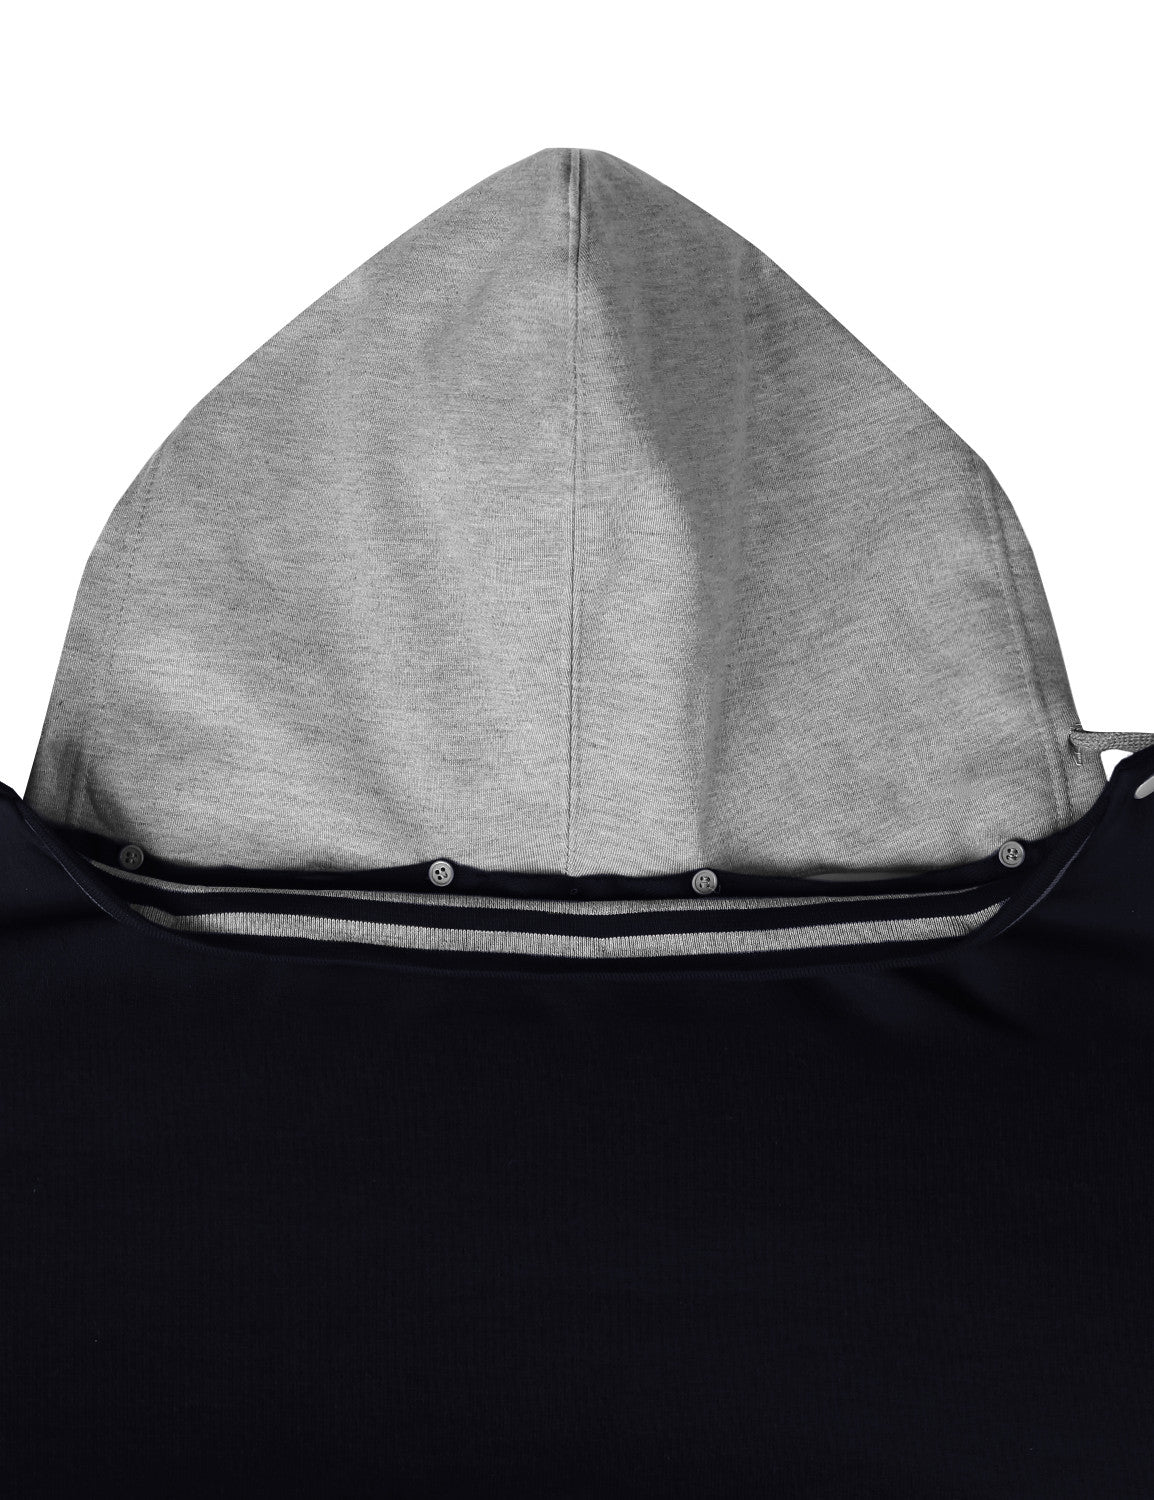 NAVYHGRAY Baseball Hoodie Jacket - URBANCREWS